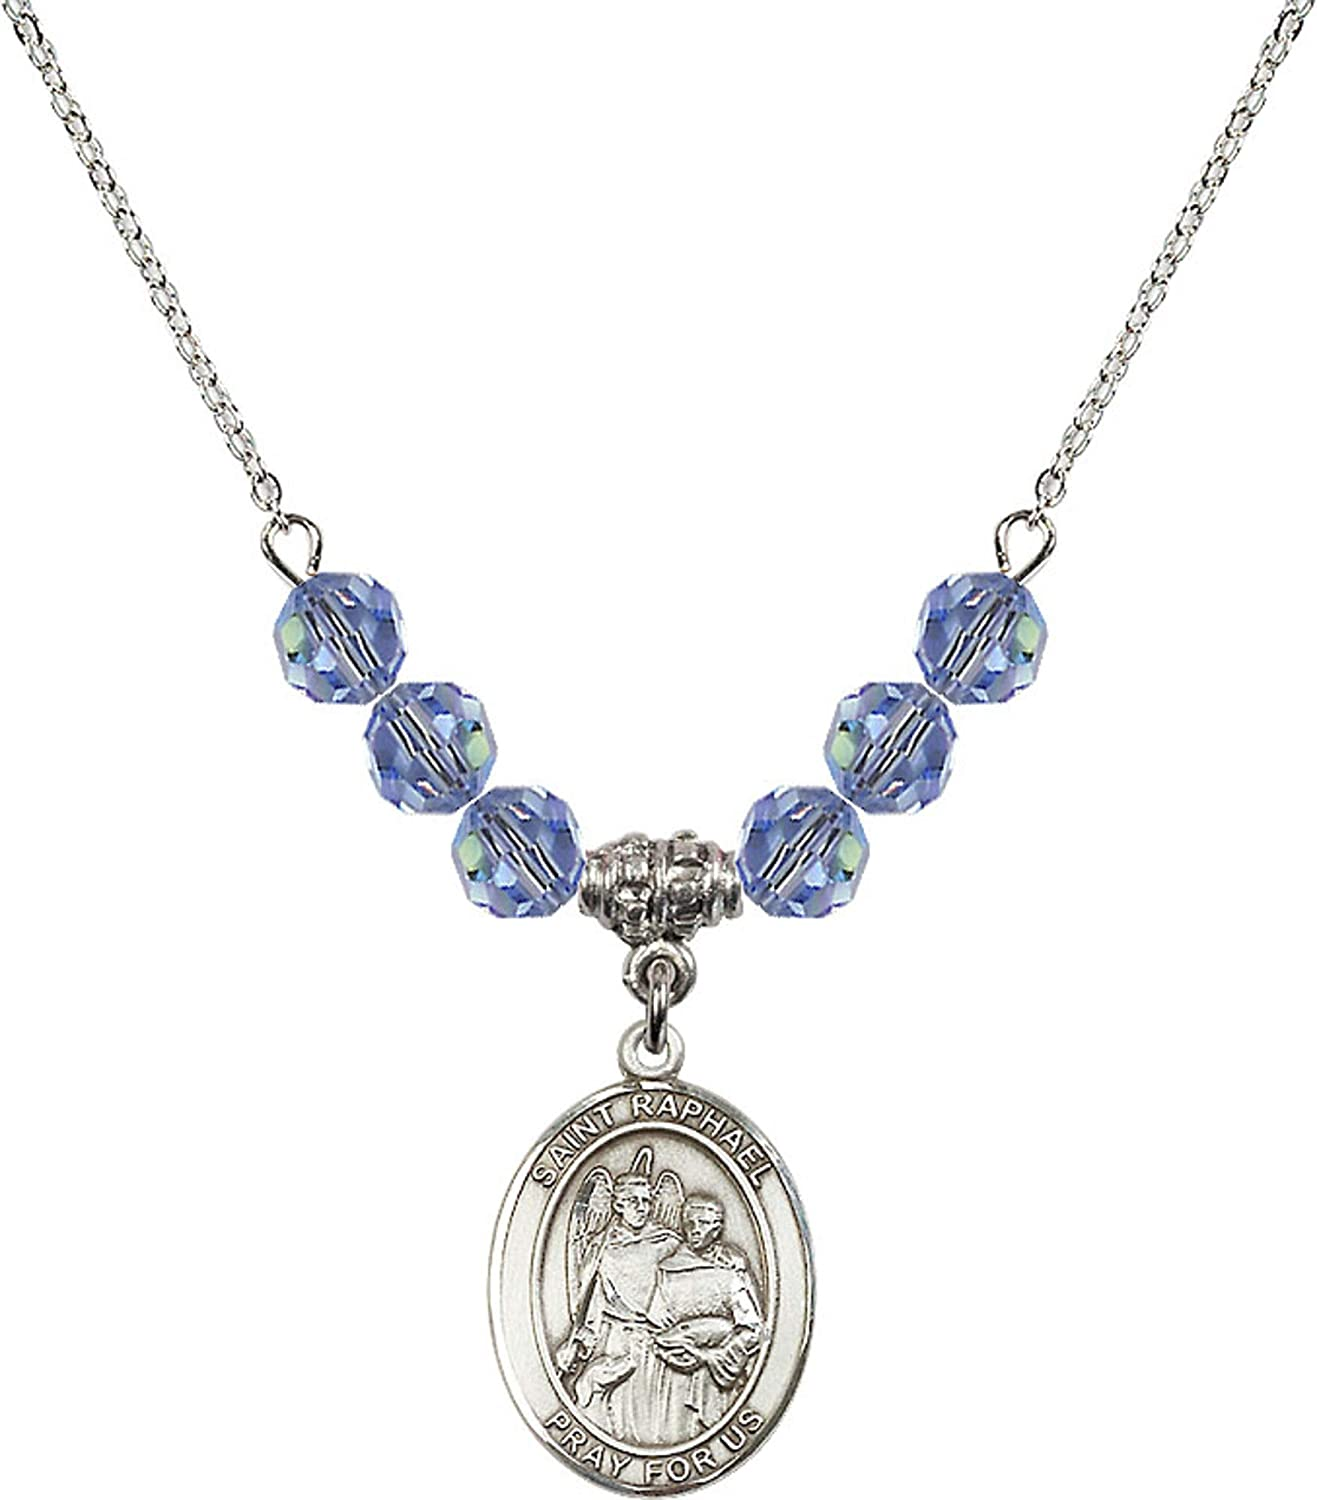 Bonyak Jewelry 18 Inch Rhodium Plated Necklace w// 6mm Light Blue September Birth Month Stone Beads and Saint Raphael The Archangel Charm